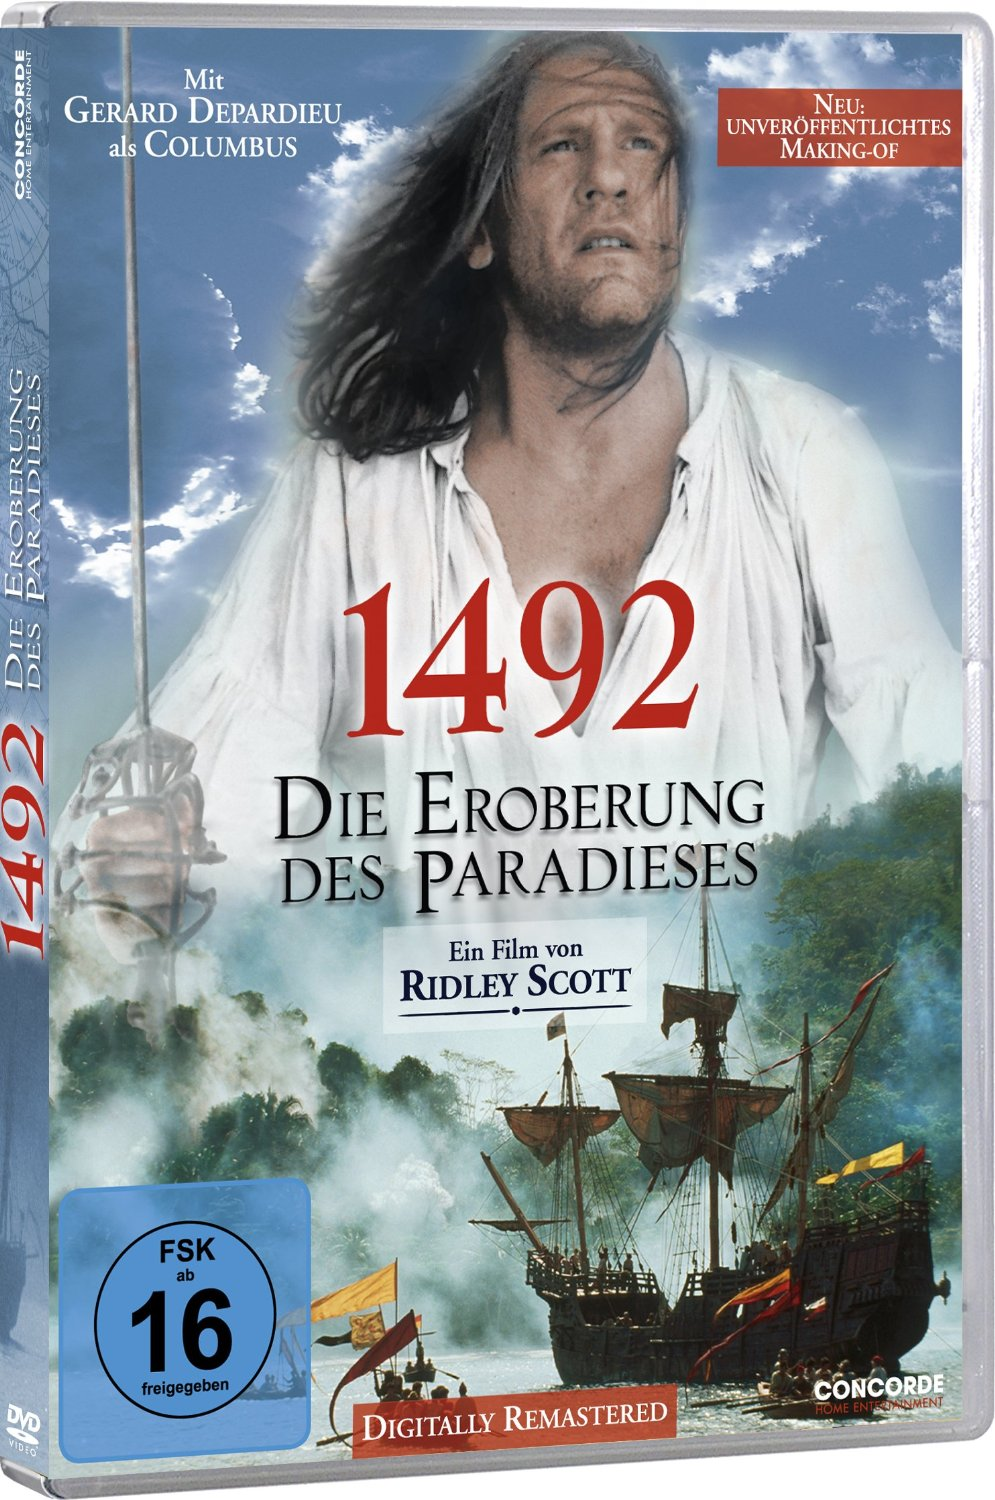 herr der filme 1492 die eroberung des paradieses gerard depardieu dvd. Black Bedroom Furniture Sets. Home Design Ideas